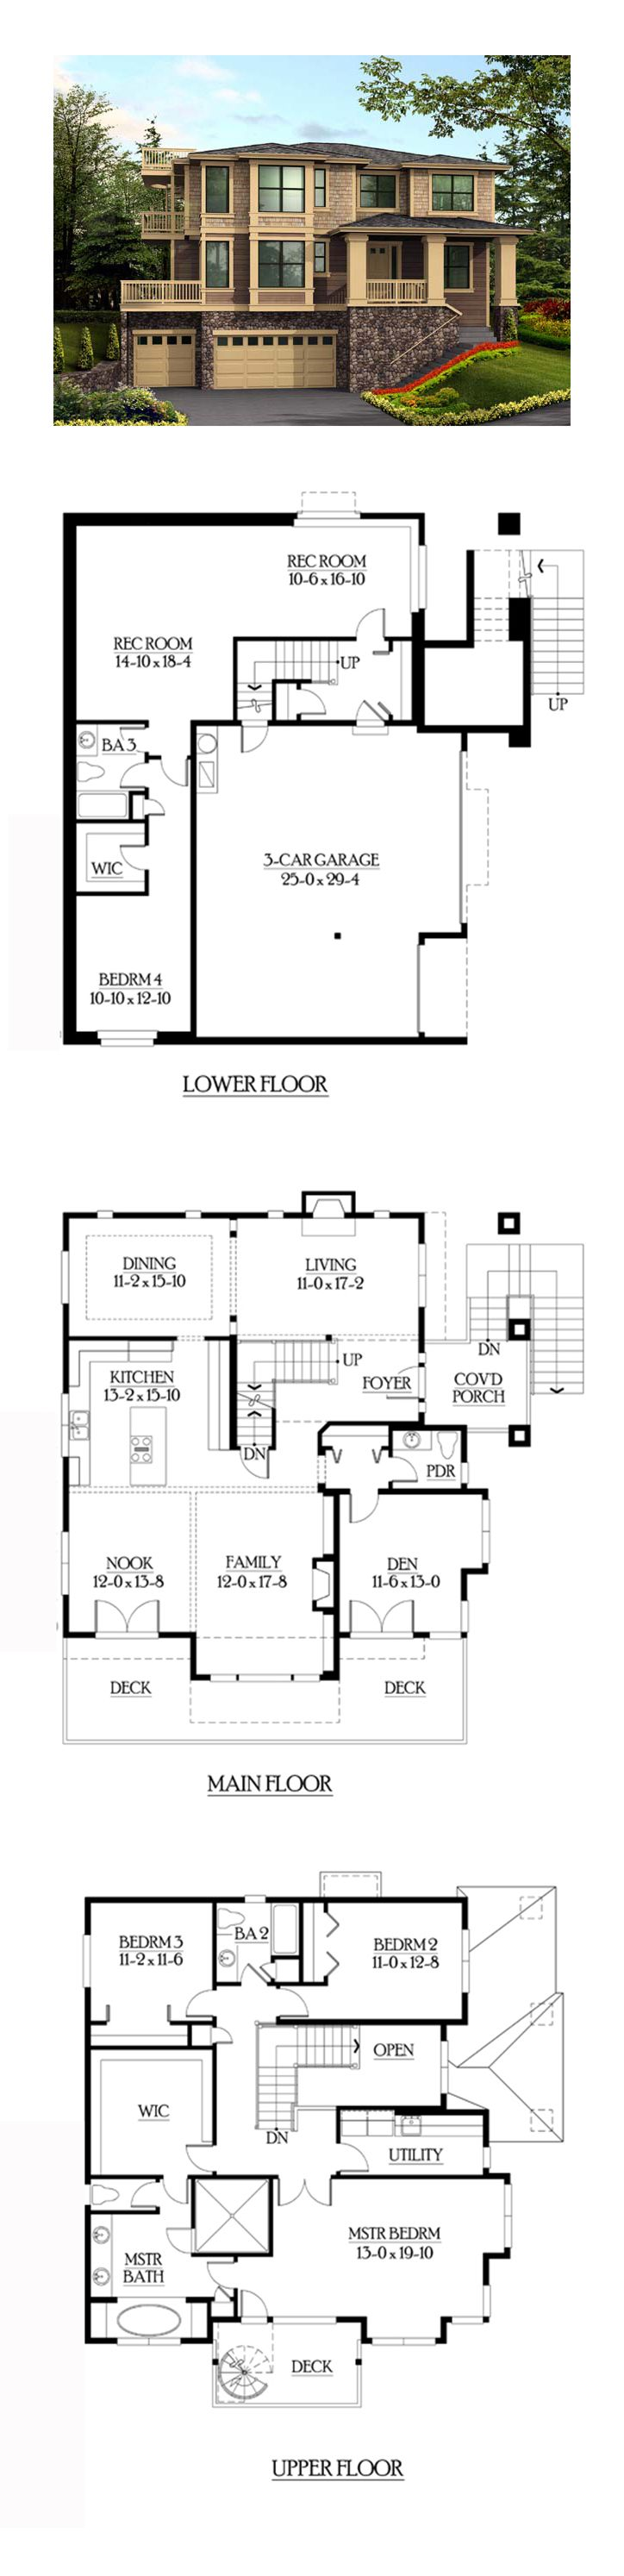 Finished basement cool house plan id chp 39324 total living area 3946